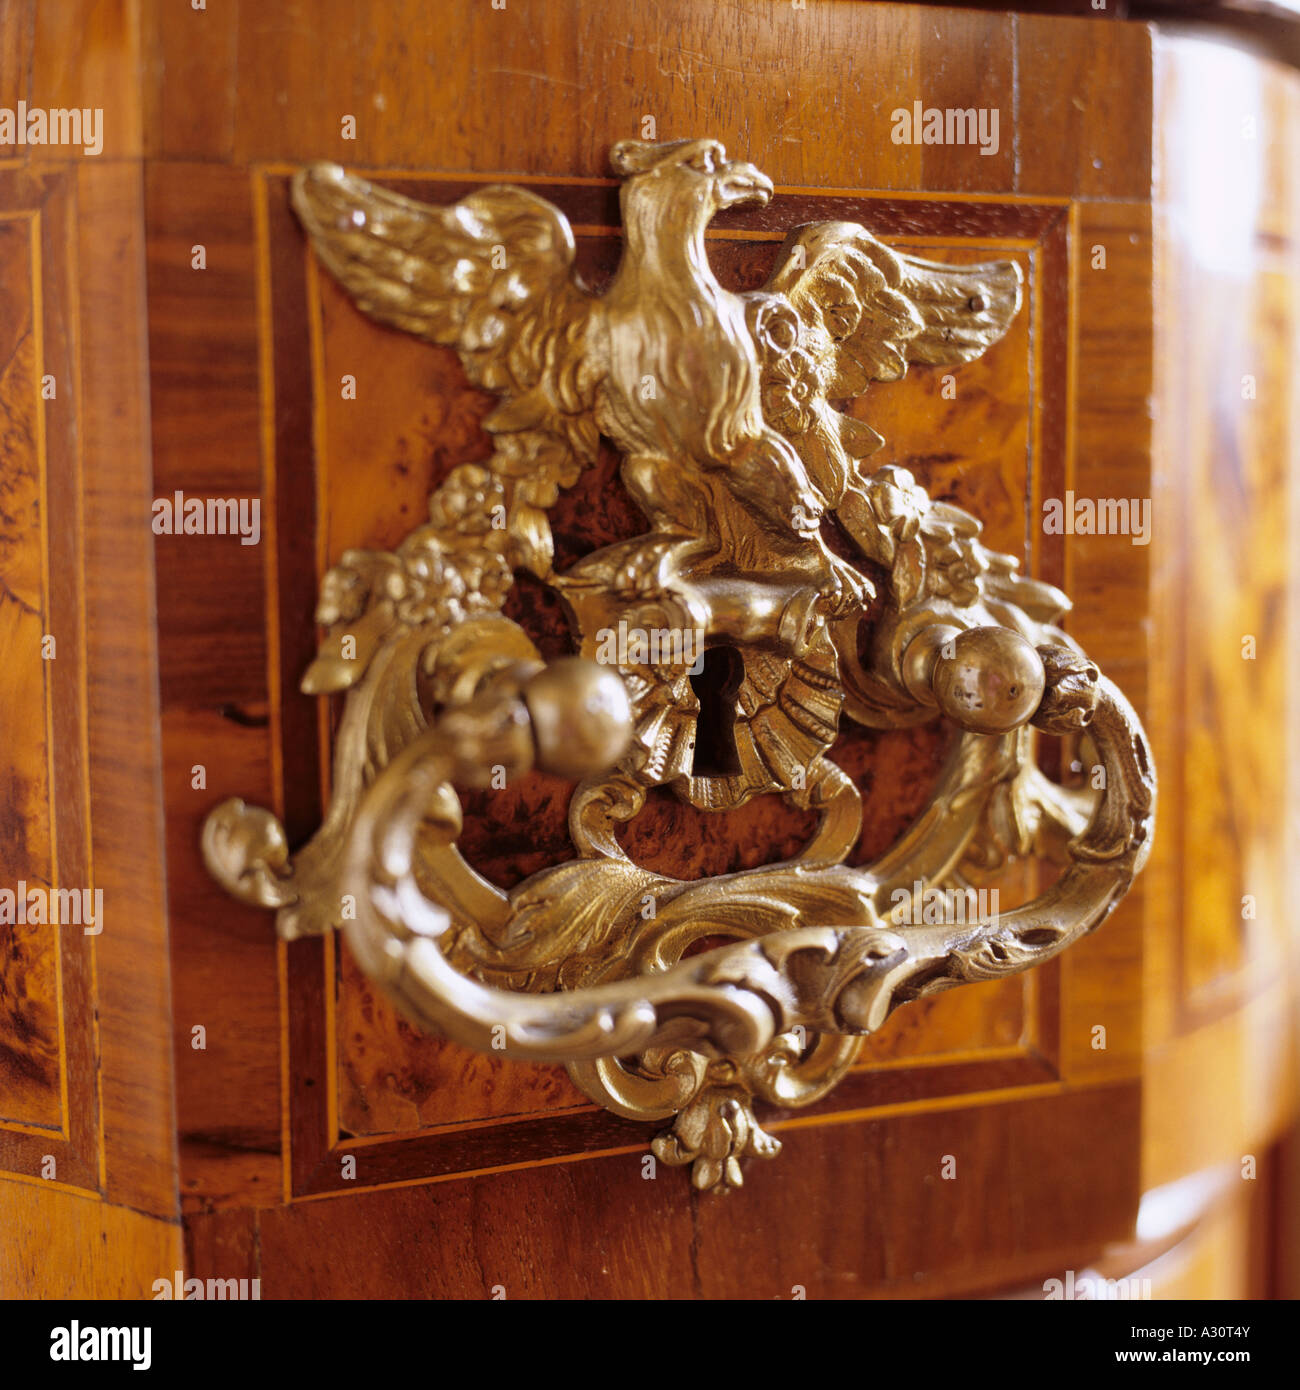 bronze gilt handle on antique writing desk with drawers - Stock Image